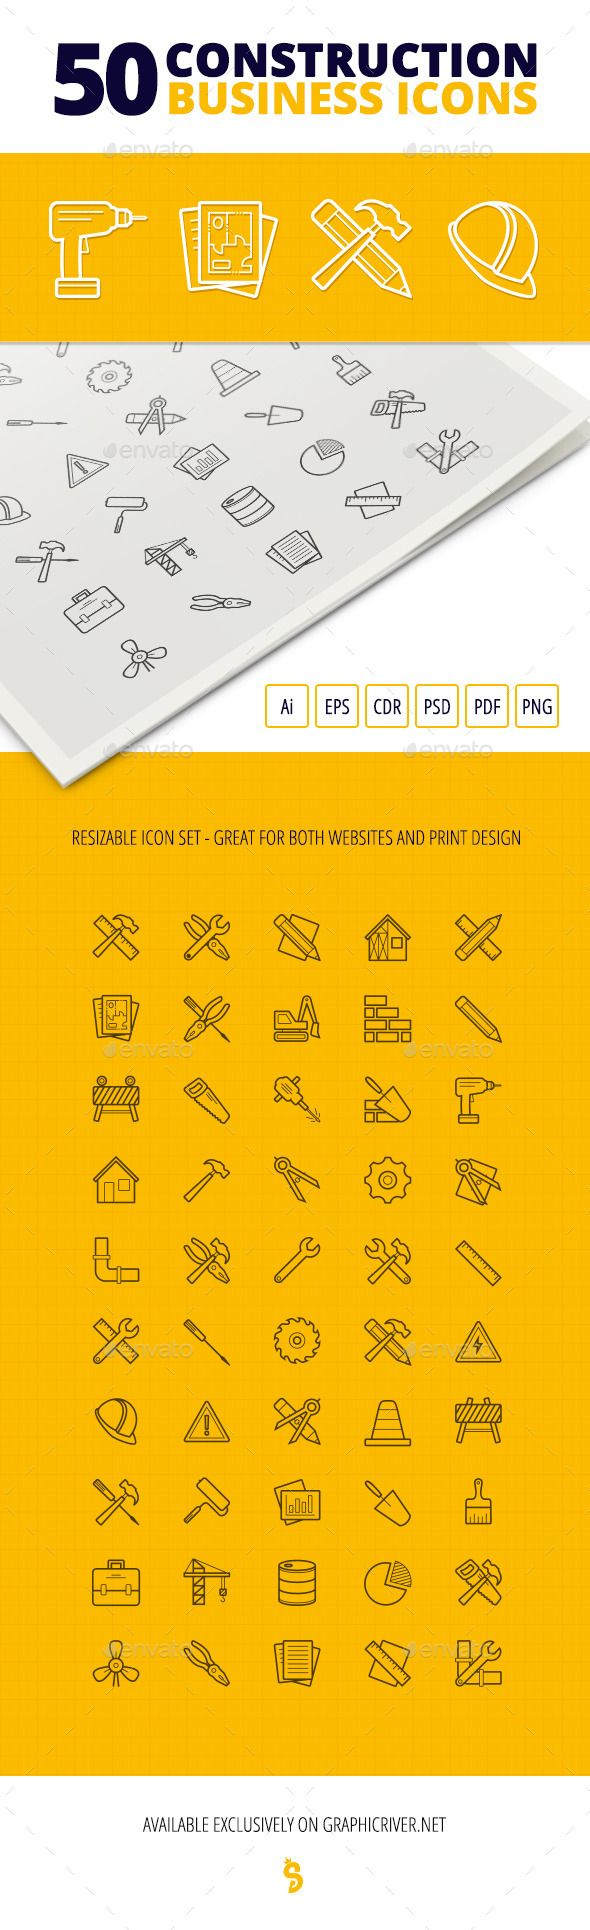 50 Construction Business Icons